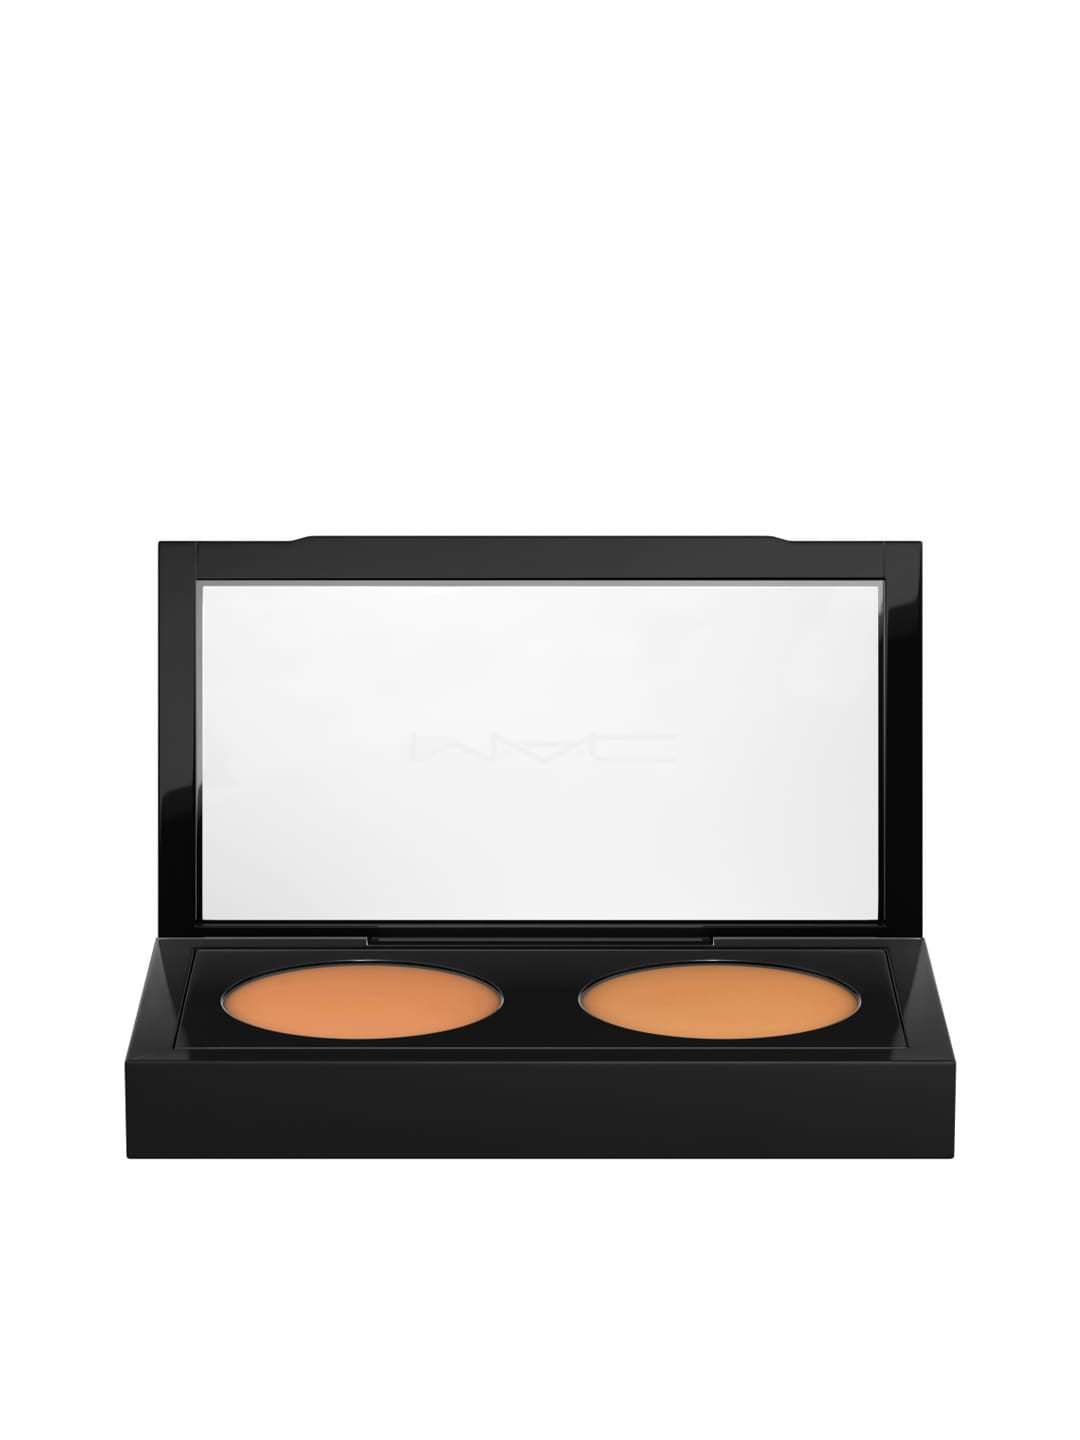 M.A.C NW40 & NC45 Studio Finish Concealer Duo image